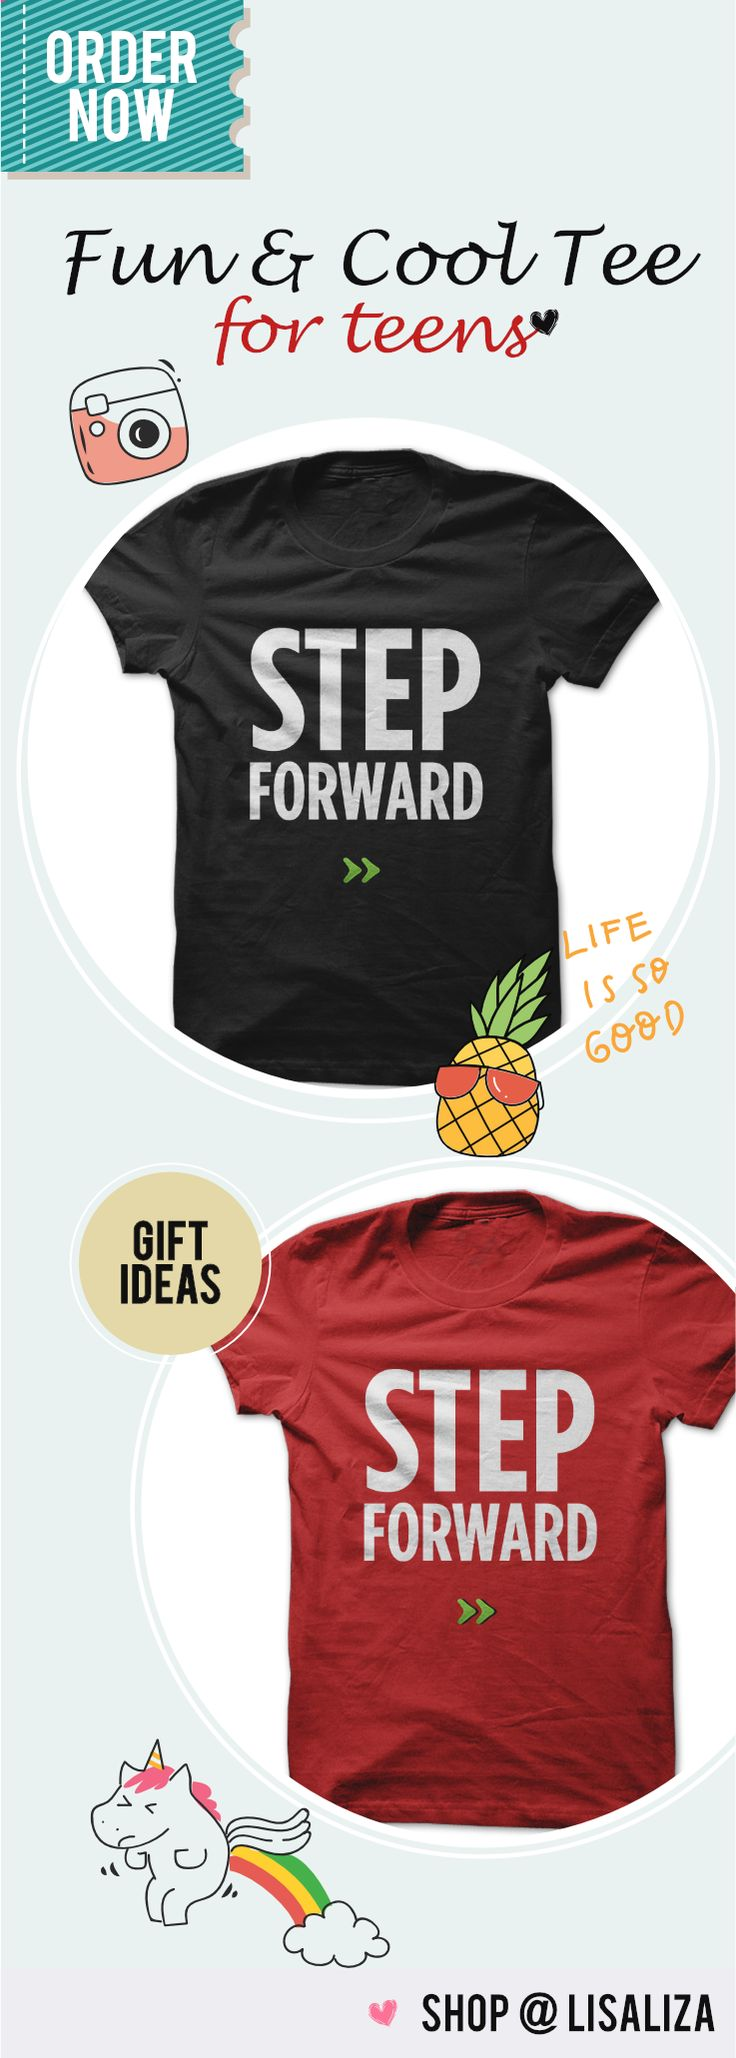 Step Forward. Motivational /Inspirational Tees Quotes and Sayings for everyone. Spreading Good Vibes /Positive Vibes . No bad days put on this cool designs and feel the positive energy . Casual Outfits for everyone. Tumblr Teen Fashion Unisex Tee Shirt for Men & Women #SayingTee #TeensBoys #TeensChic #Gifts #BestFriends #MotivationalTee #LisaLiza #SunfrogTeens #Redbubble #tumblr